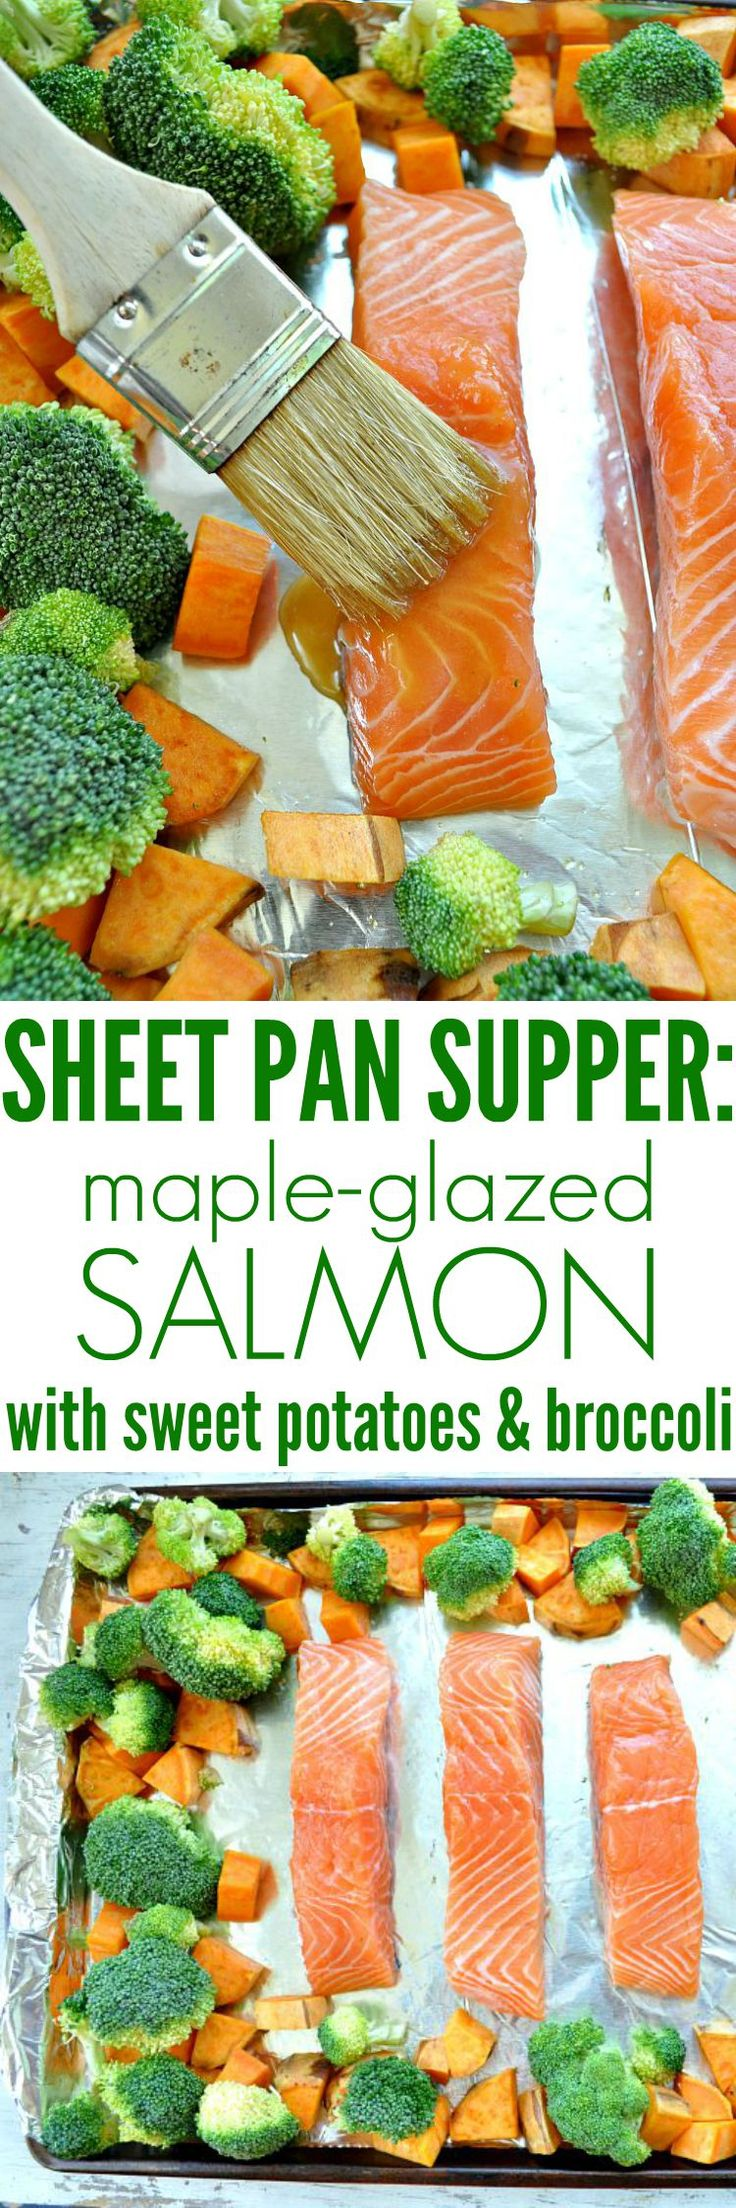 With this easy Sheet Pan Supper, the Maple-Glazed Salmon cooks on the same tray as the sweet potatoes and broccoli for a healthy and FAST dinner! It's clean eating, dairy-free, and gluten-free too!